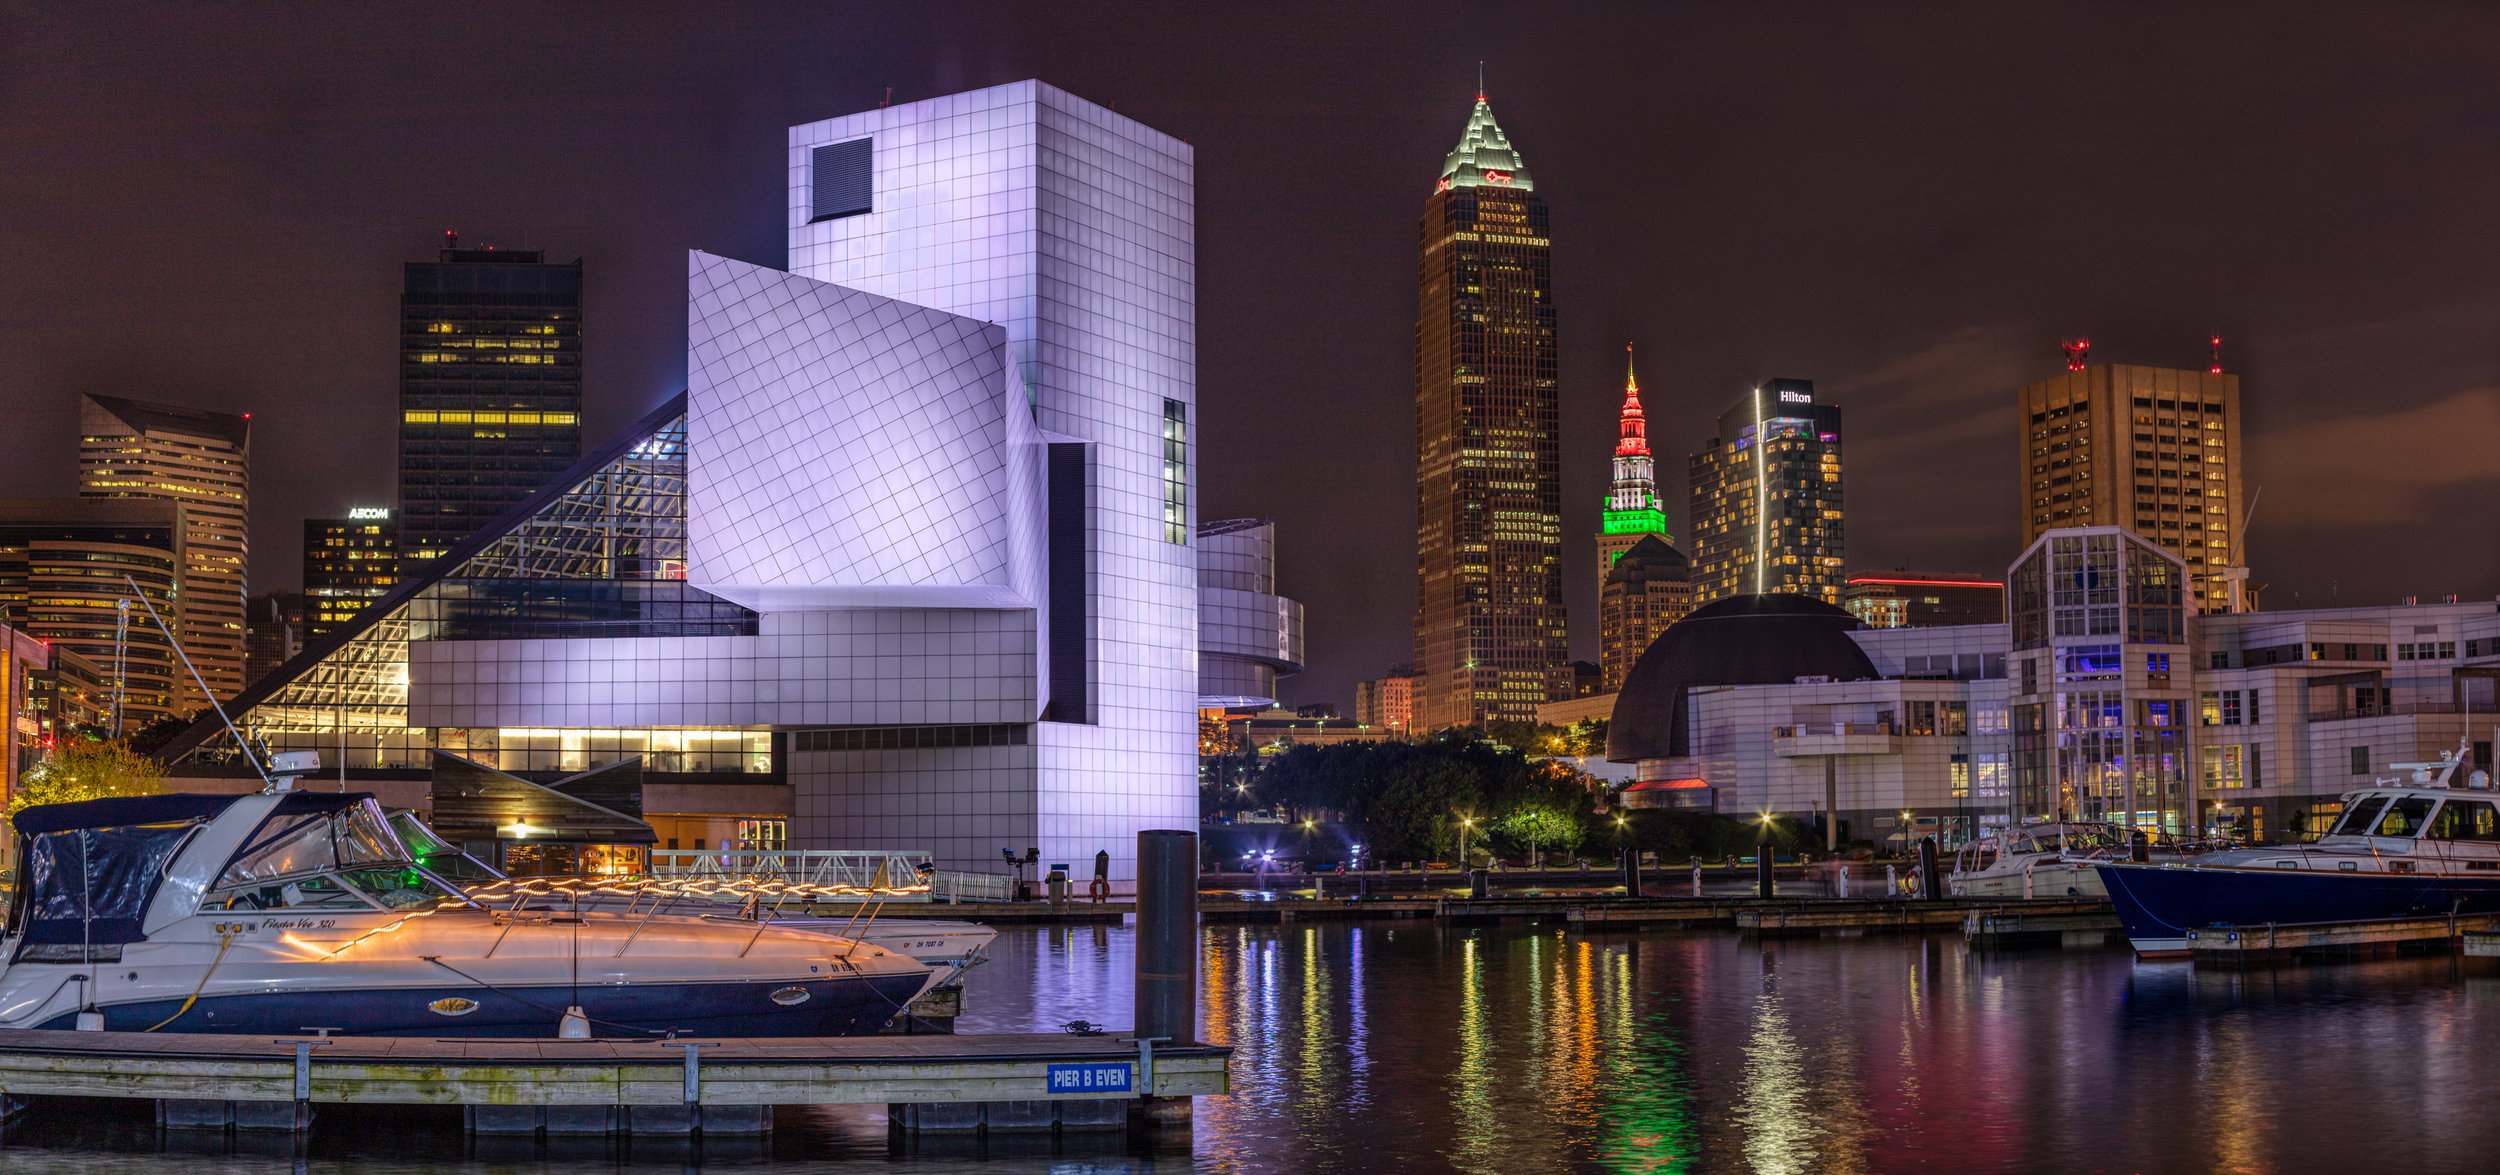 CLE_Cityscape-20.jpg